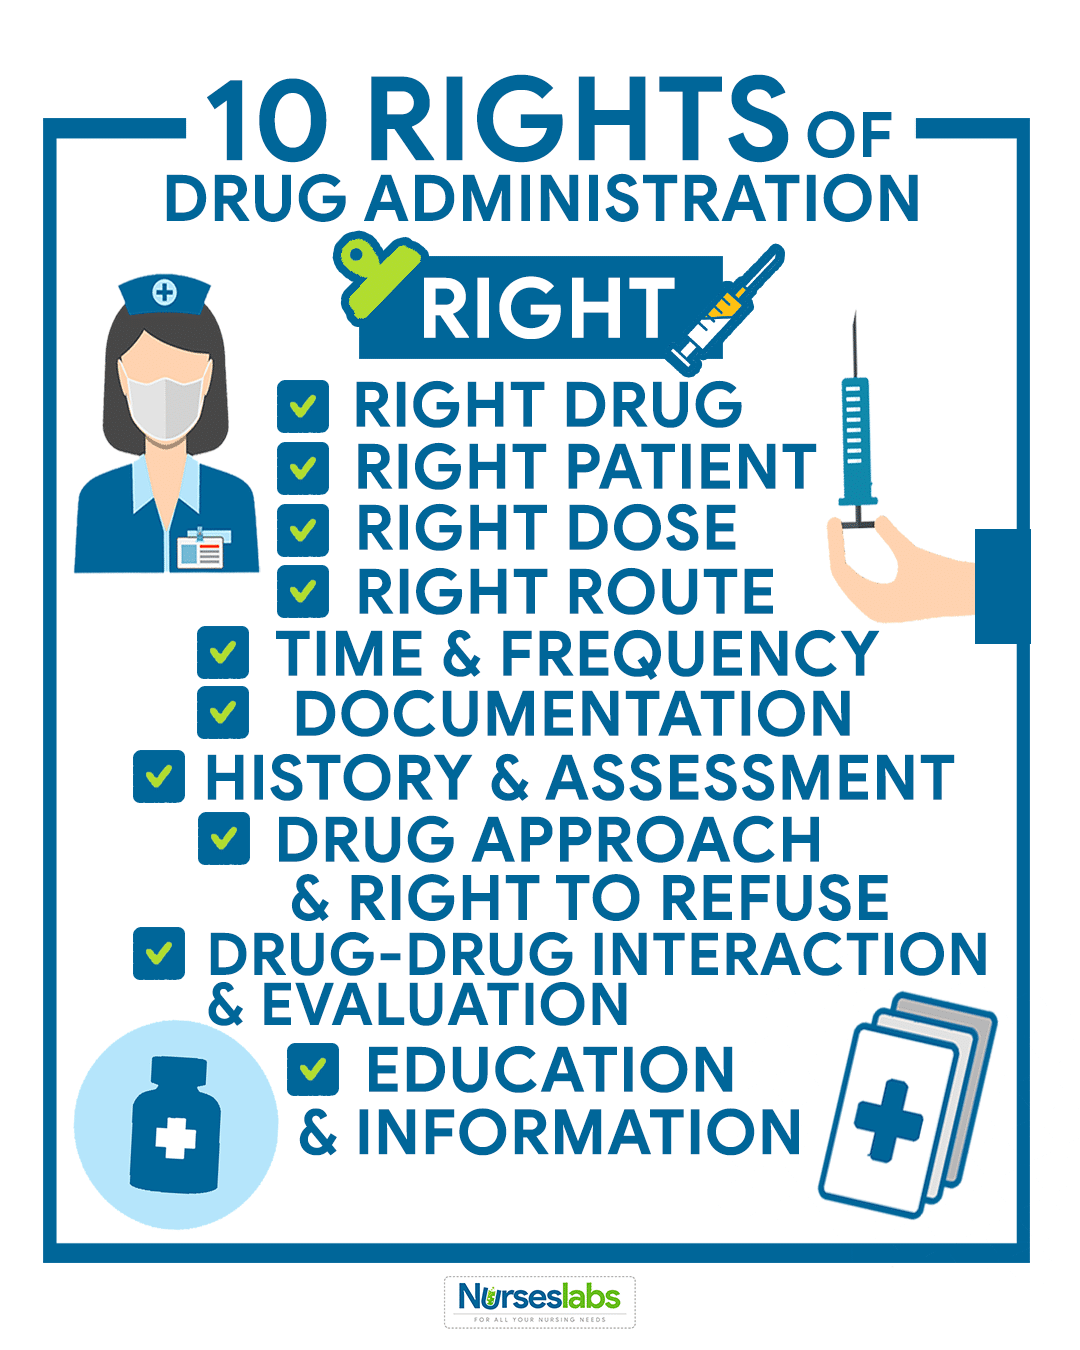 10 Rights of Drug Administration